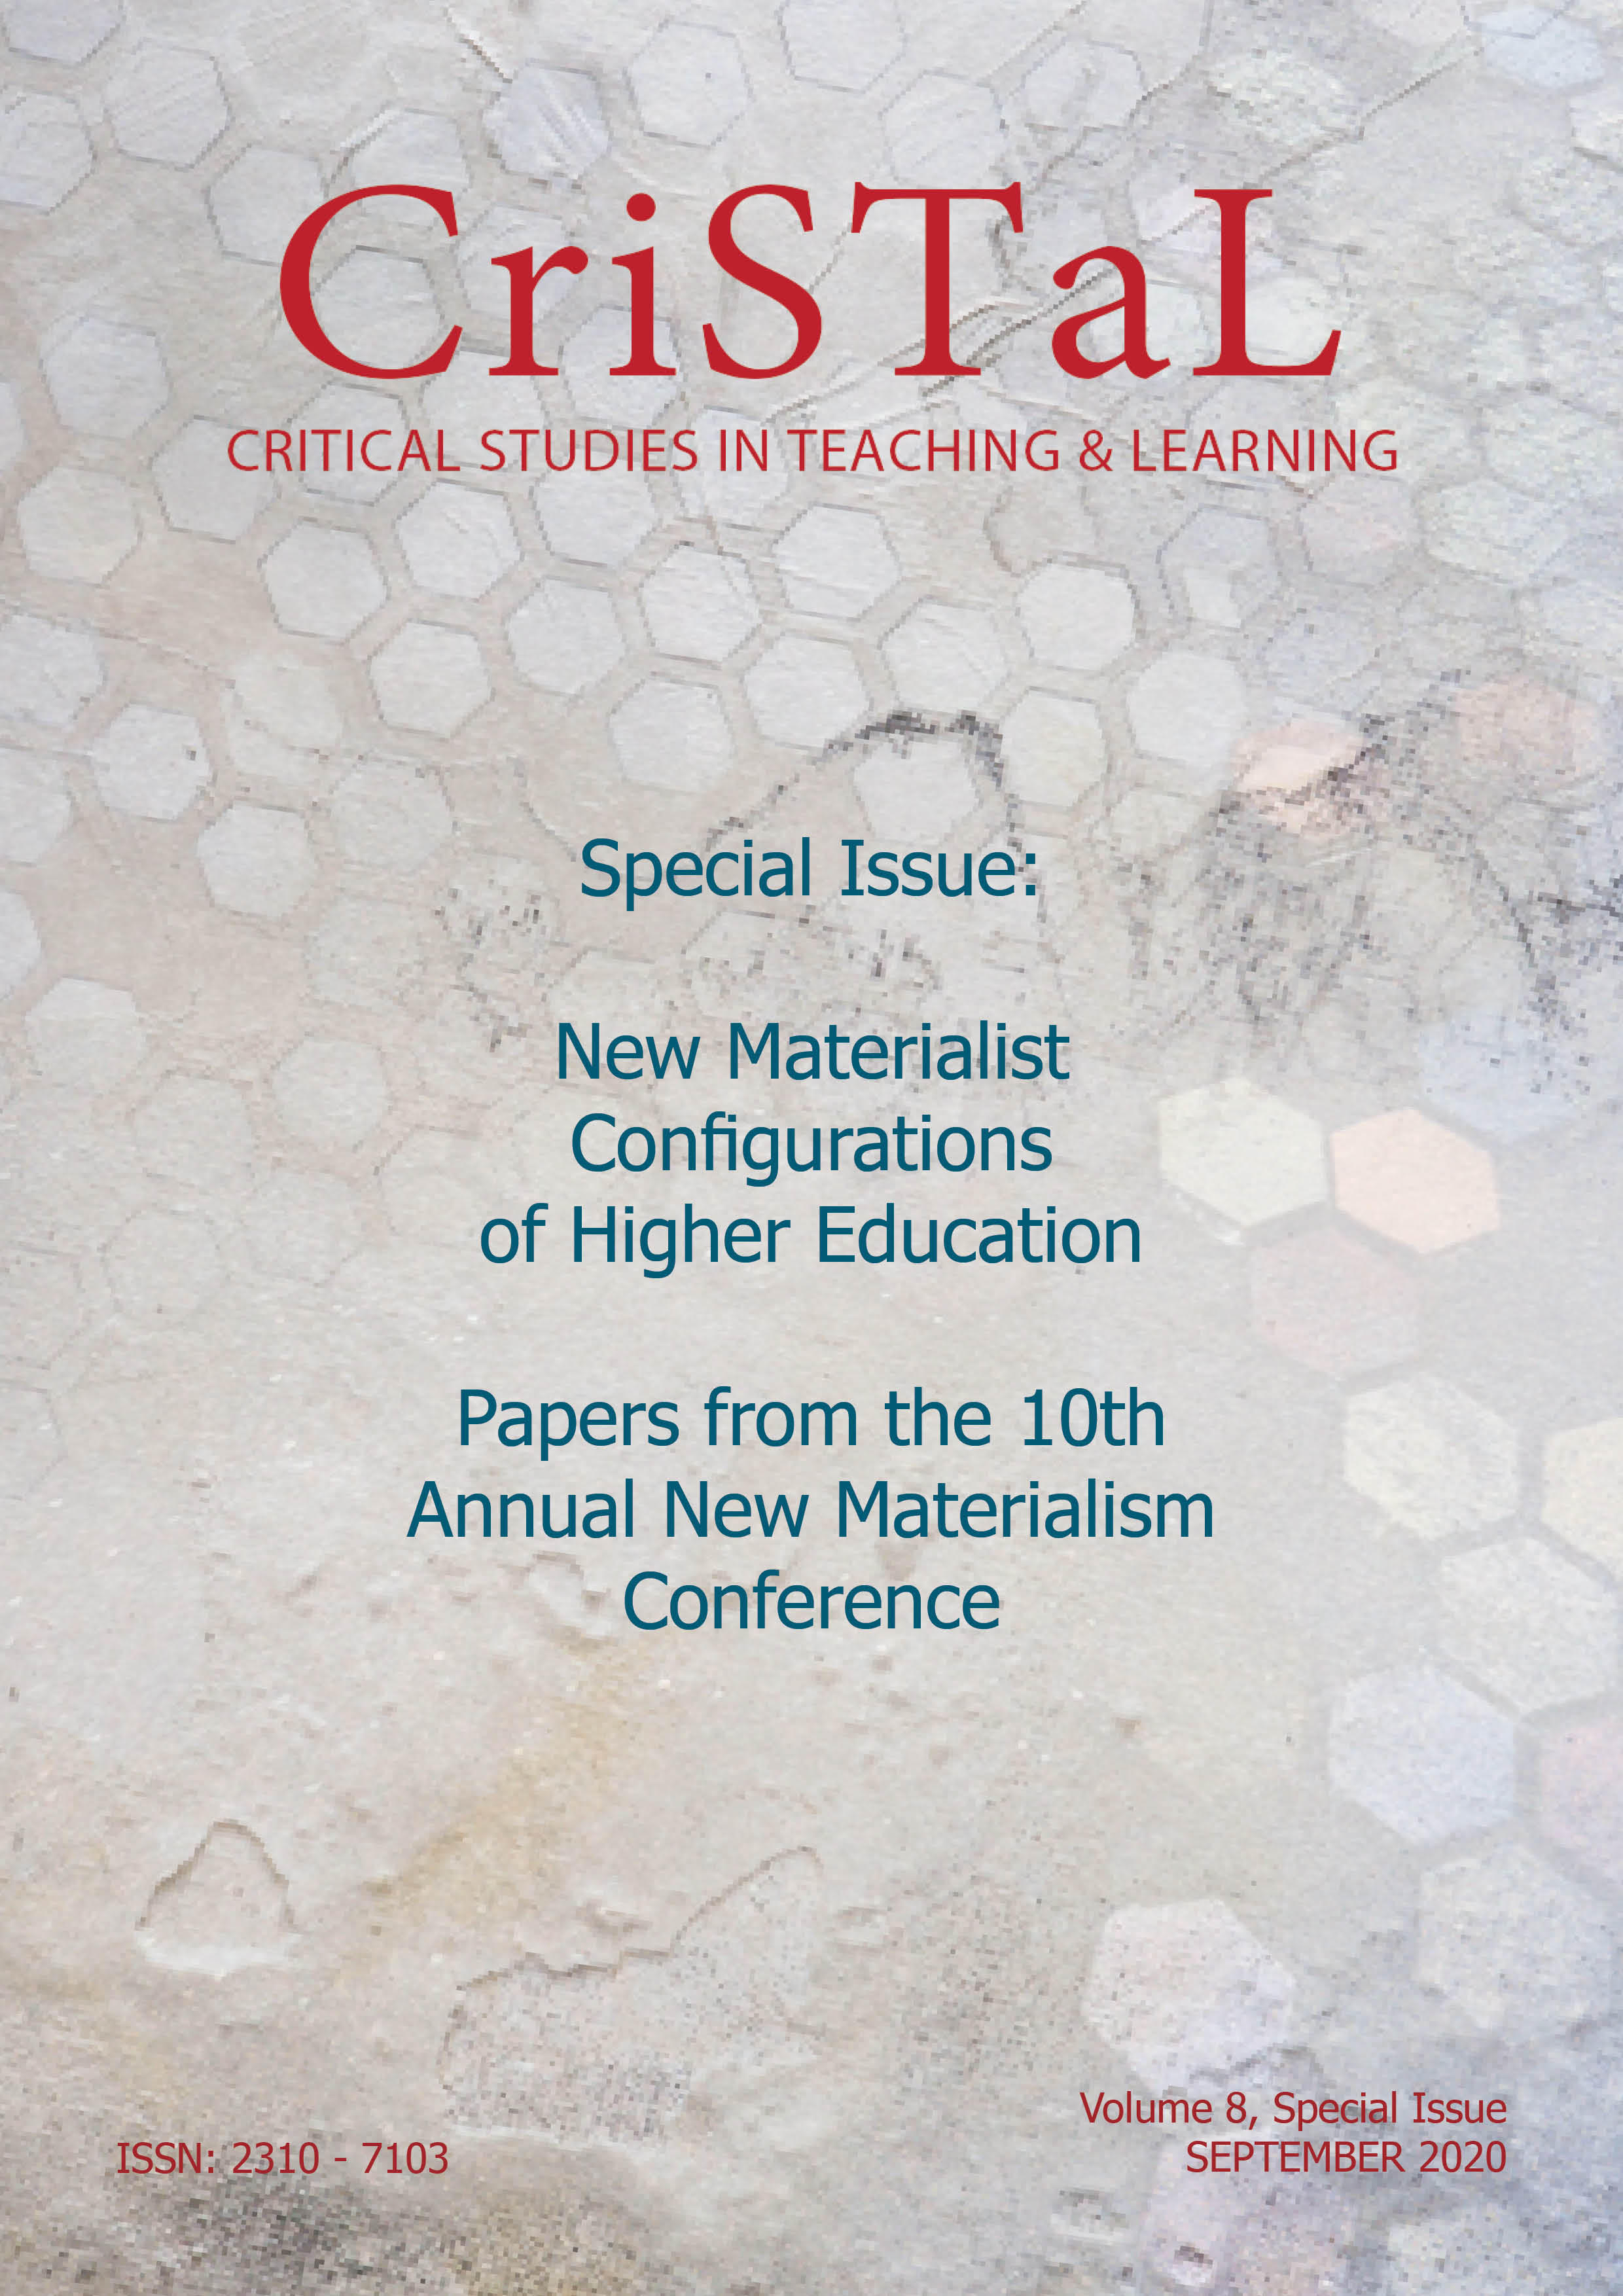 Cover of Vol 8 Special Issue of CriSTaL